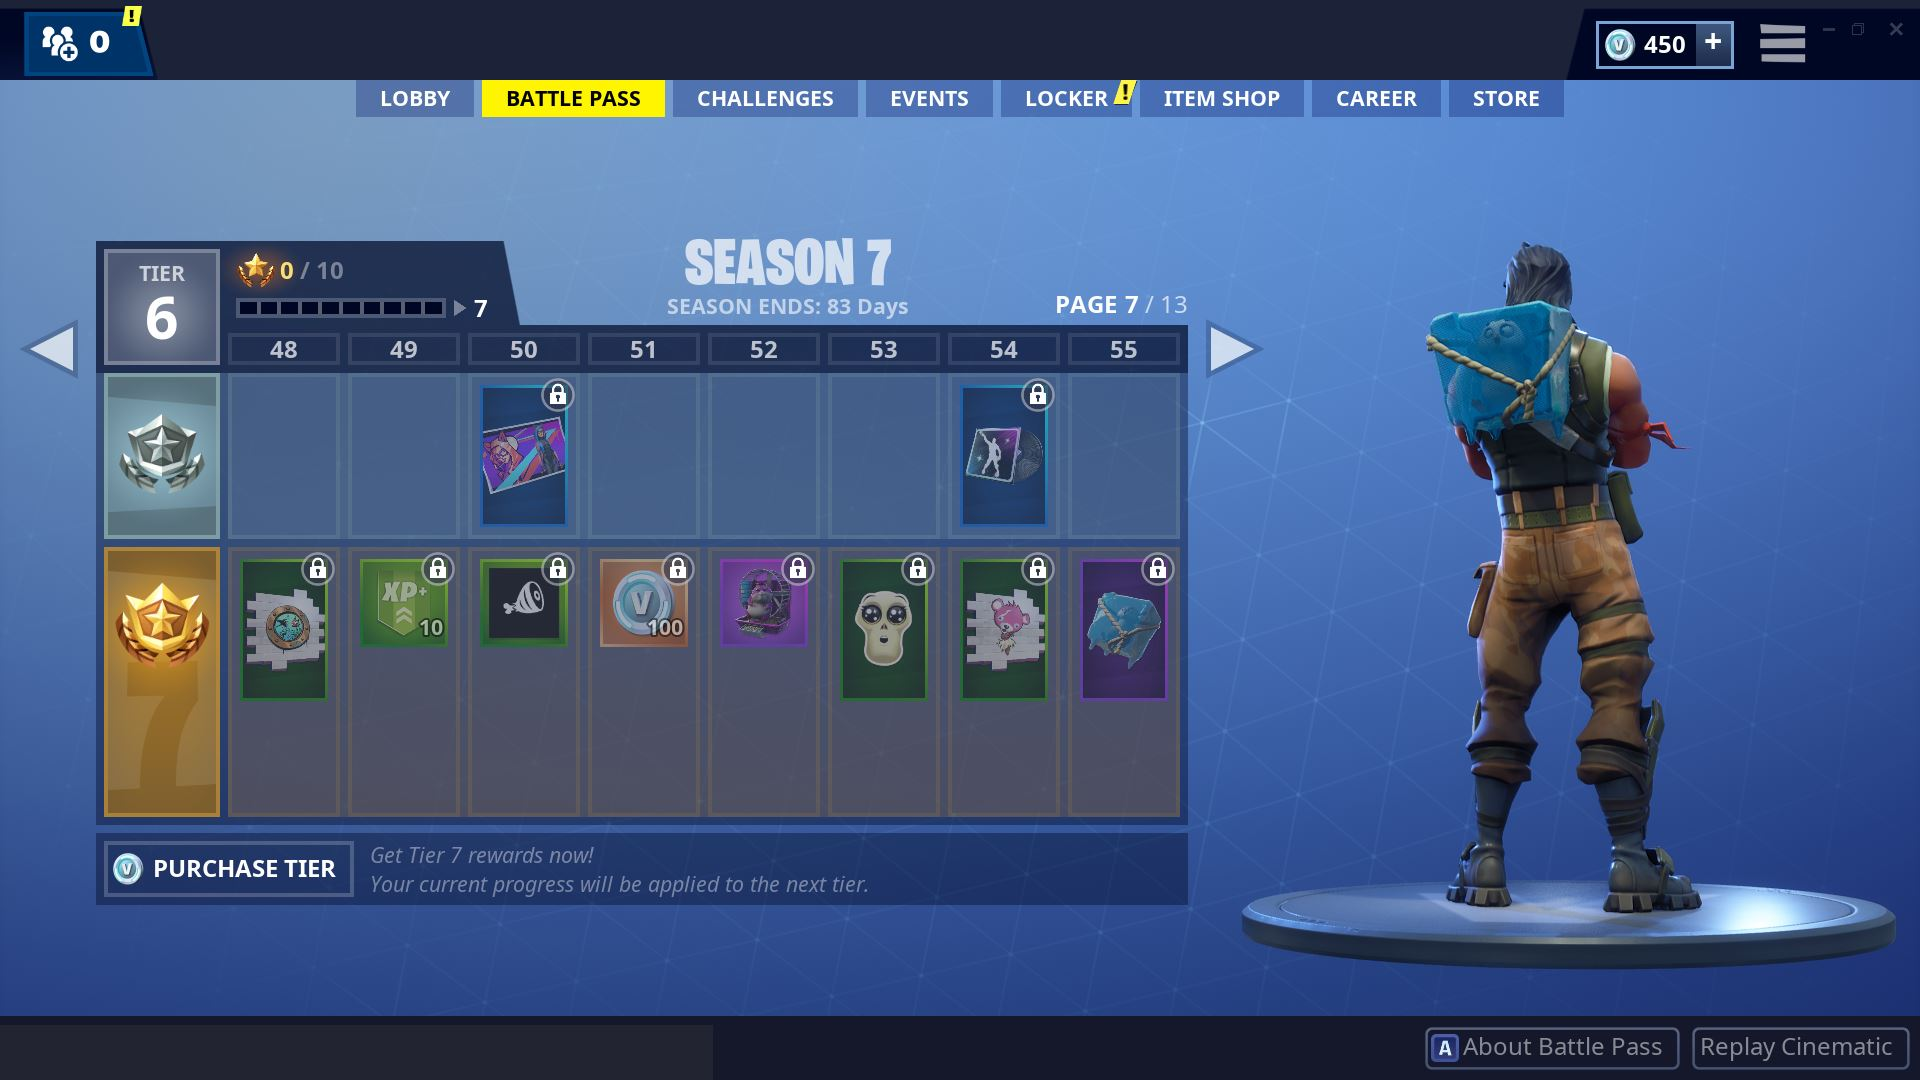 Fortnite Season 7 Battle Pass Page 7